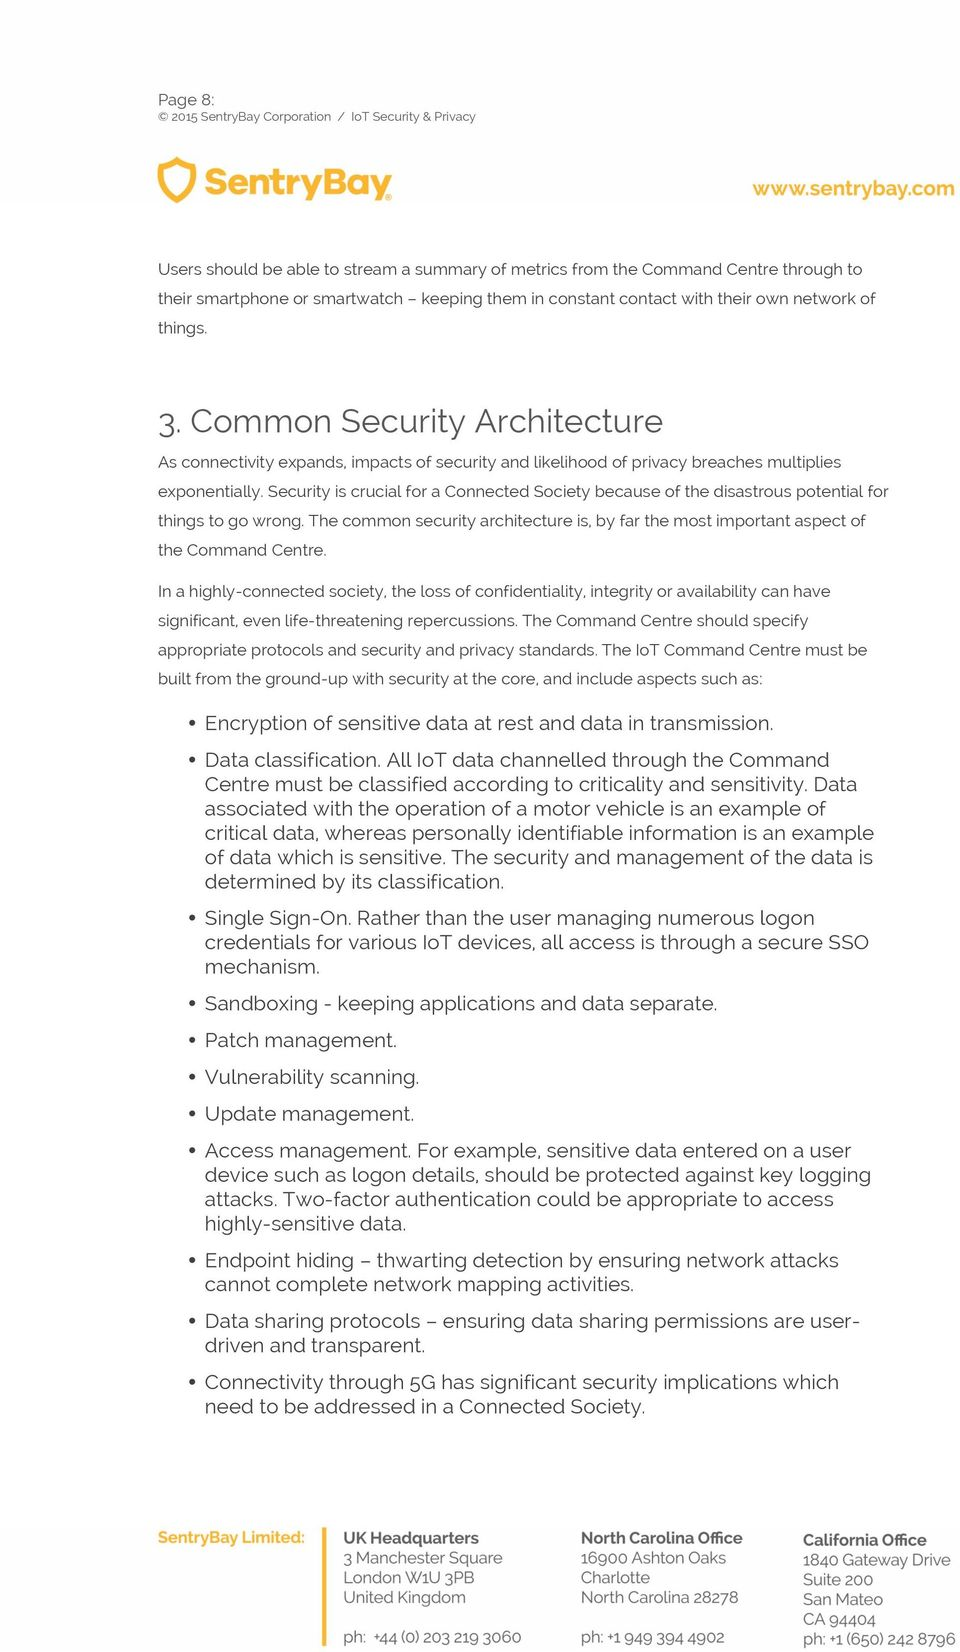 Security is crucial for a Connected Society because of the disastrous potential for things to go wrong. The common security architecture is, by far the most important aspect of the Command Centre.